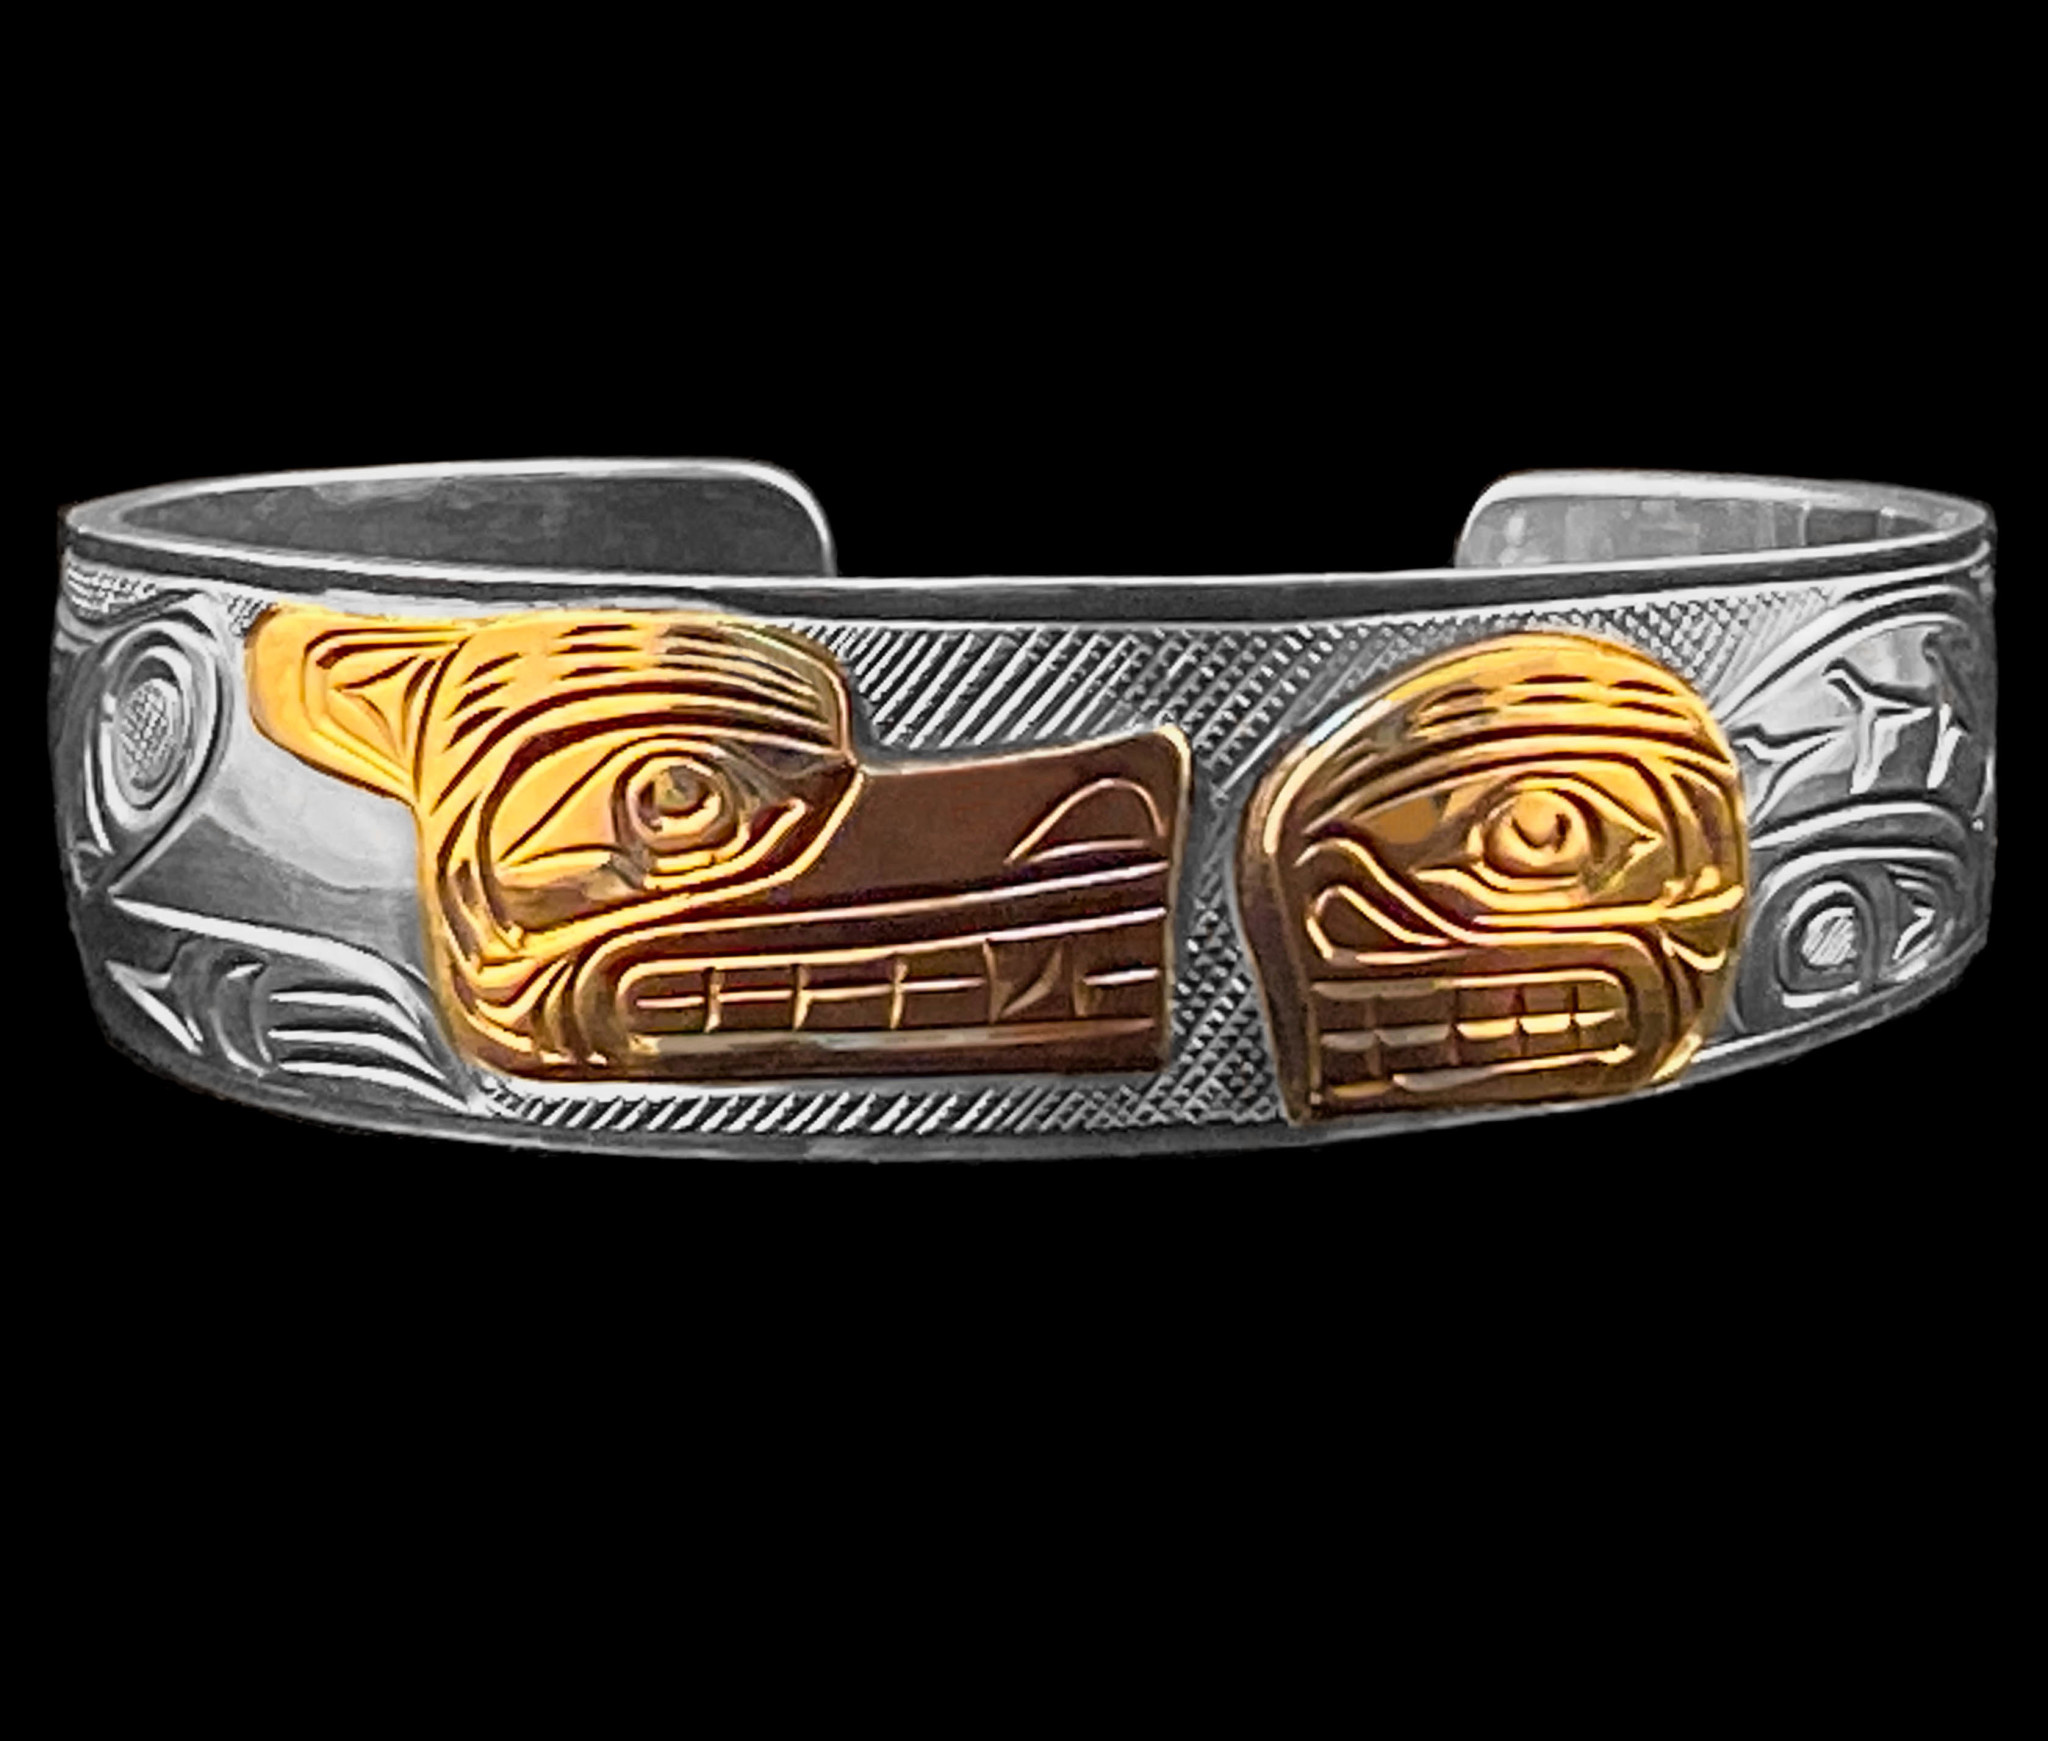 Silver Wolf / Orca  Bracelet with Gold Overlay